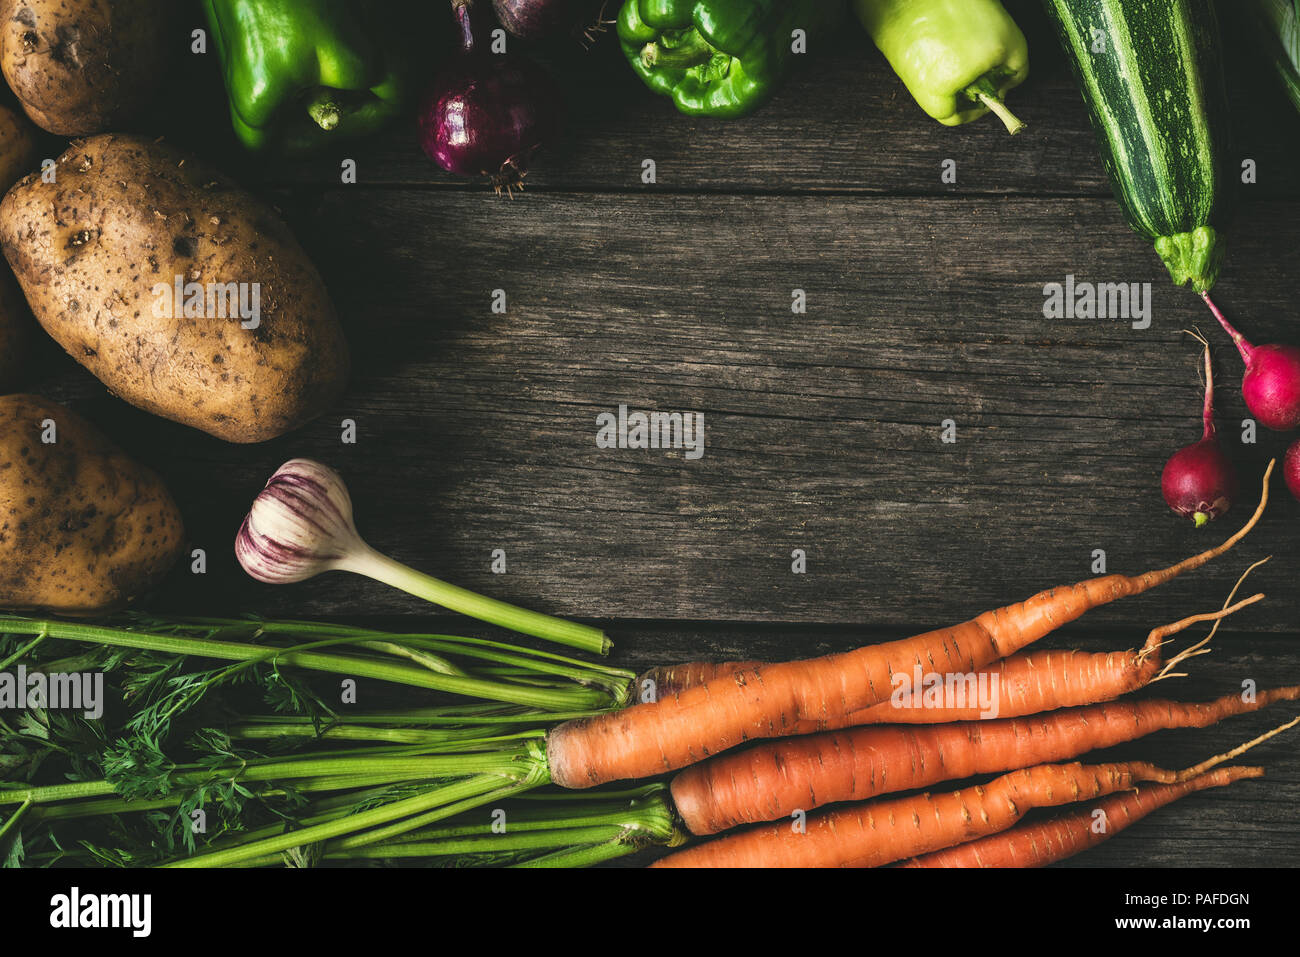 Vegetables on wood background, frame composition. Potatoes, carrots, garlic, peppers, zucchini and radishes on old wood table, copy space for text. Ag Stock Photo